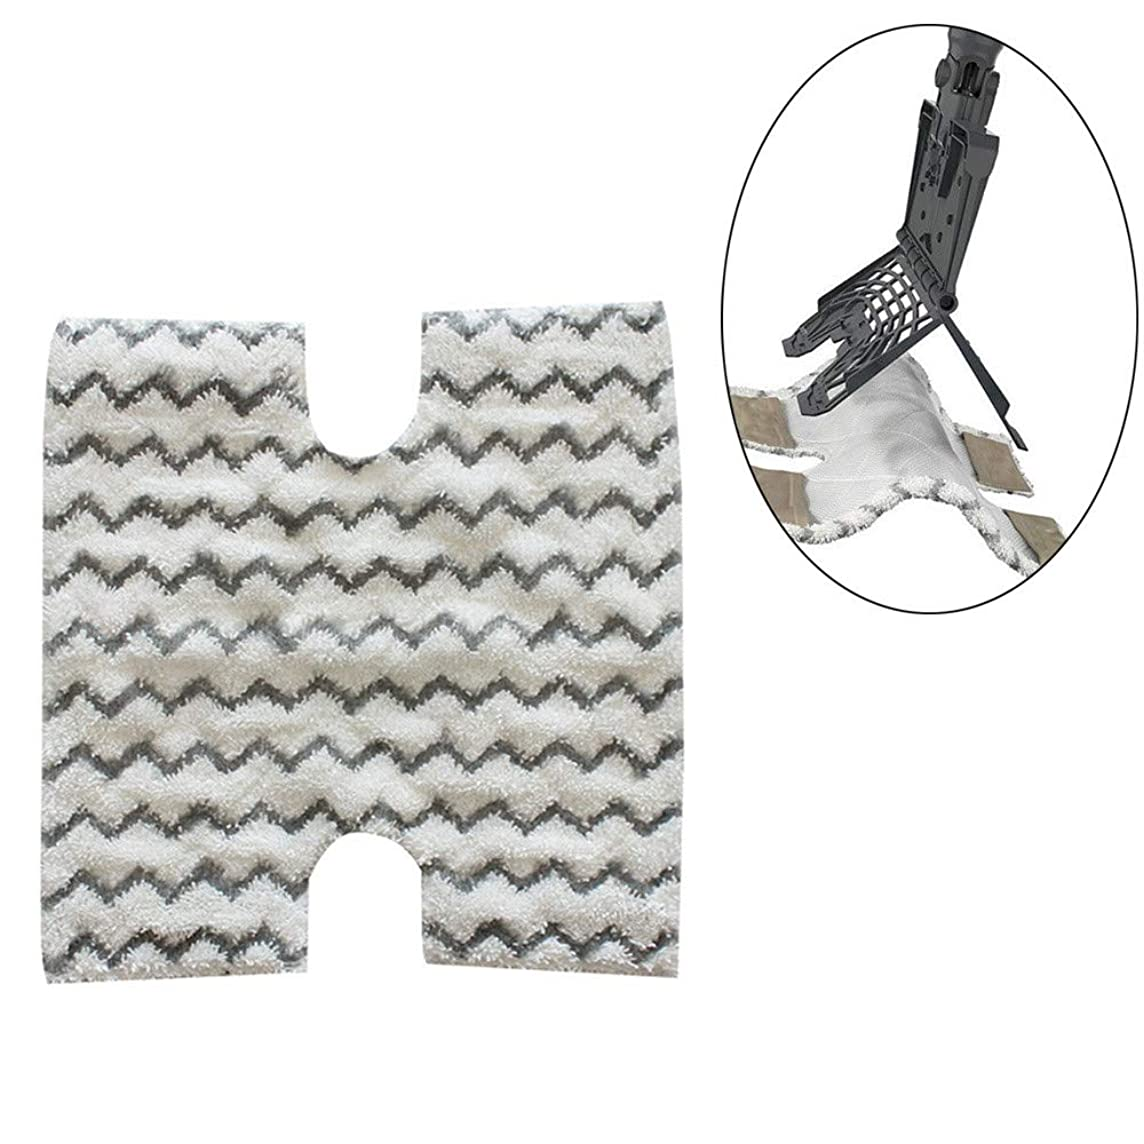 1PC Microfiber Mopping pad Replacement for Shark Genius Steam Mop S3973 Series